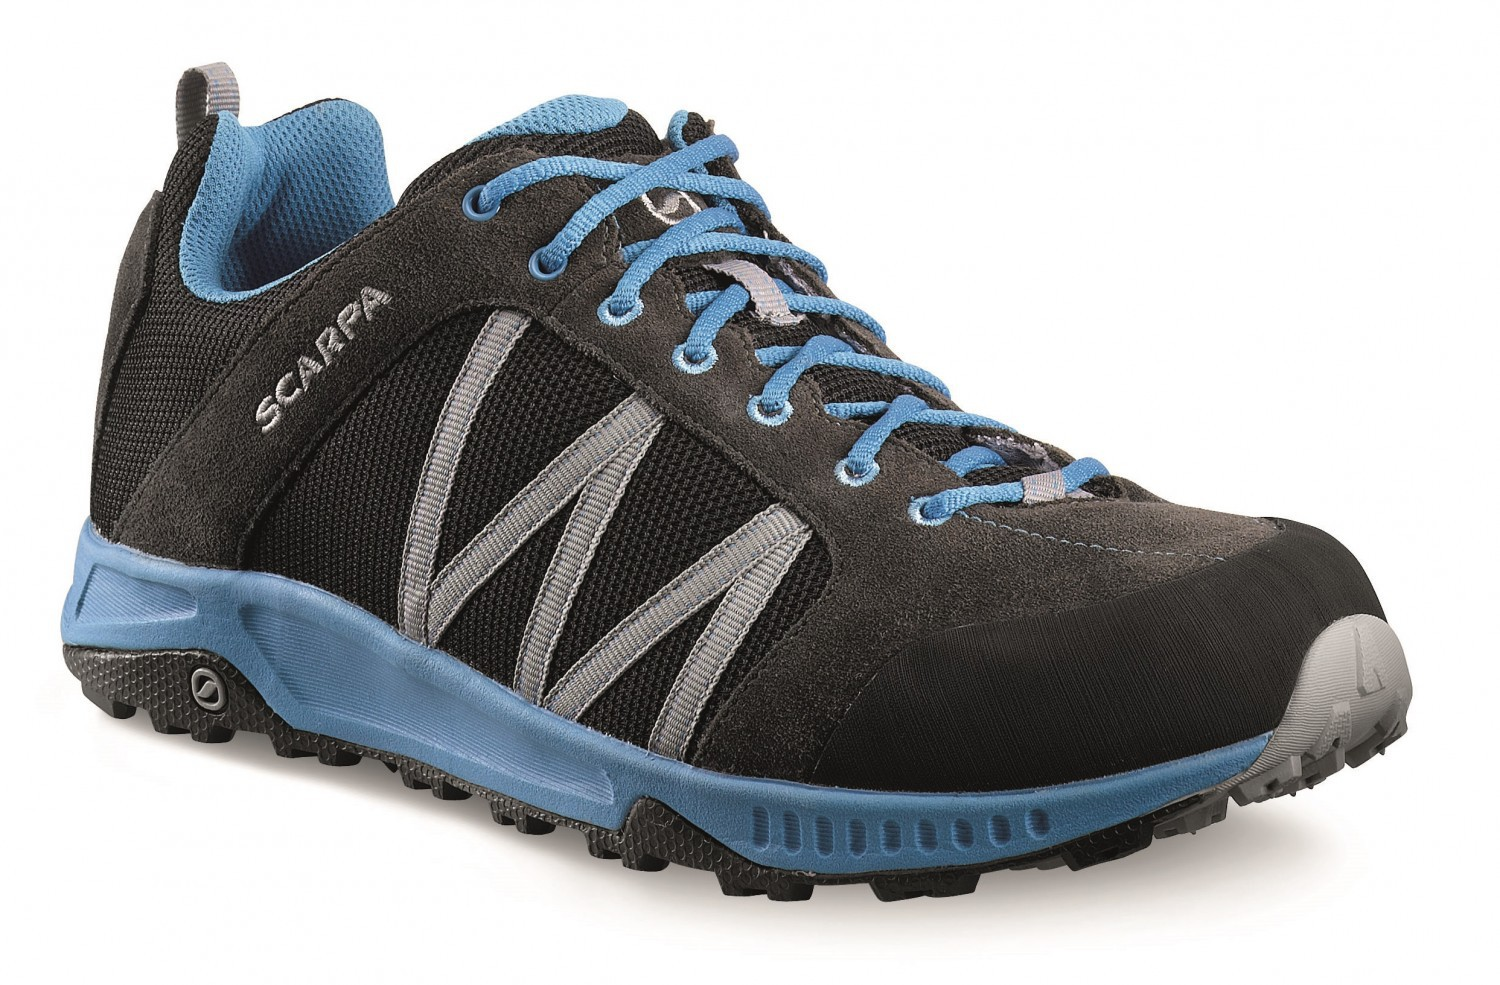 Scarpa - Rapid Black-Royale - Trailrunning Shoes - 38